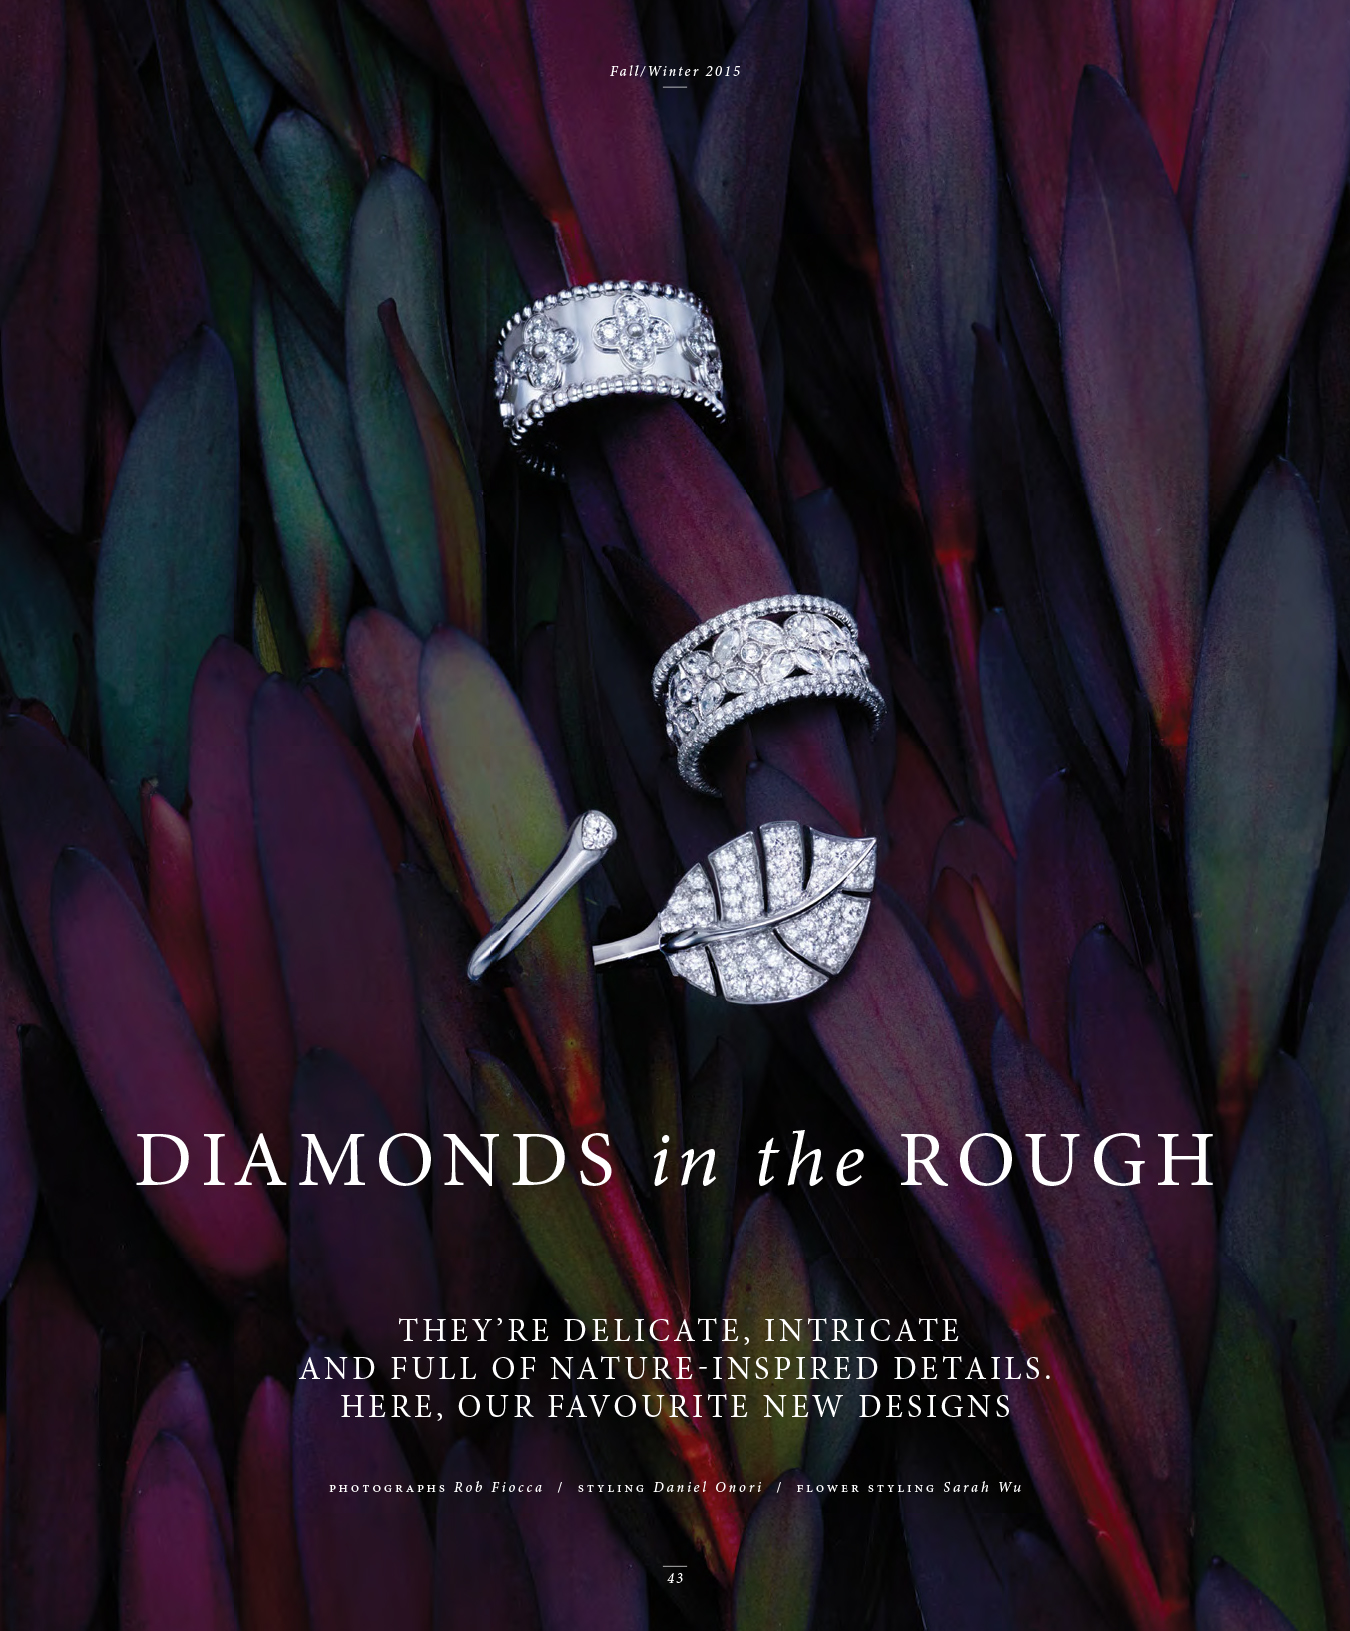 """Diamonds in the Rough.""  Birks1879,  Fall/Winter 2015 .  Art Direction: Nevien Assani. Photo: Rob Fiocca/FUZE Reps. Styling: Daniel Onori/Plutino Group"